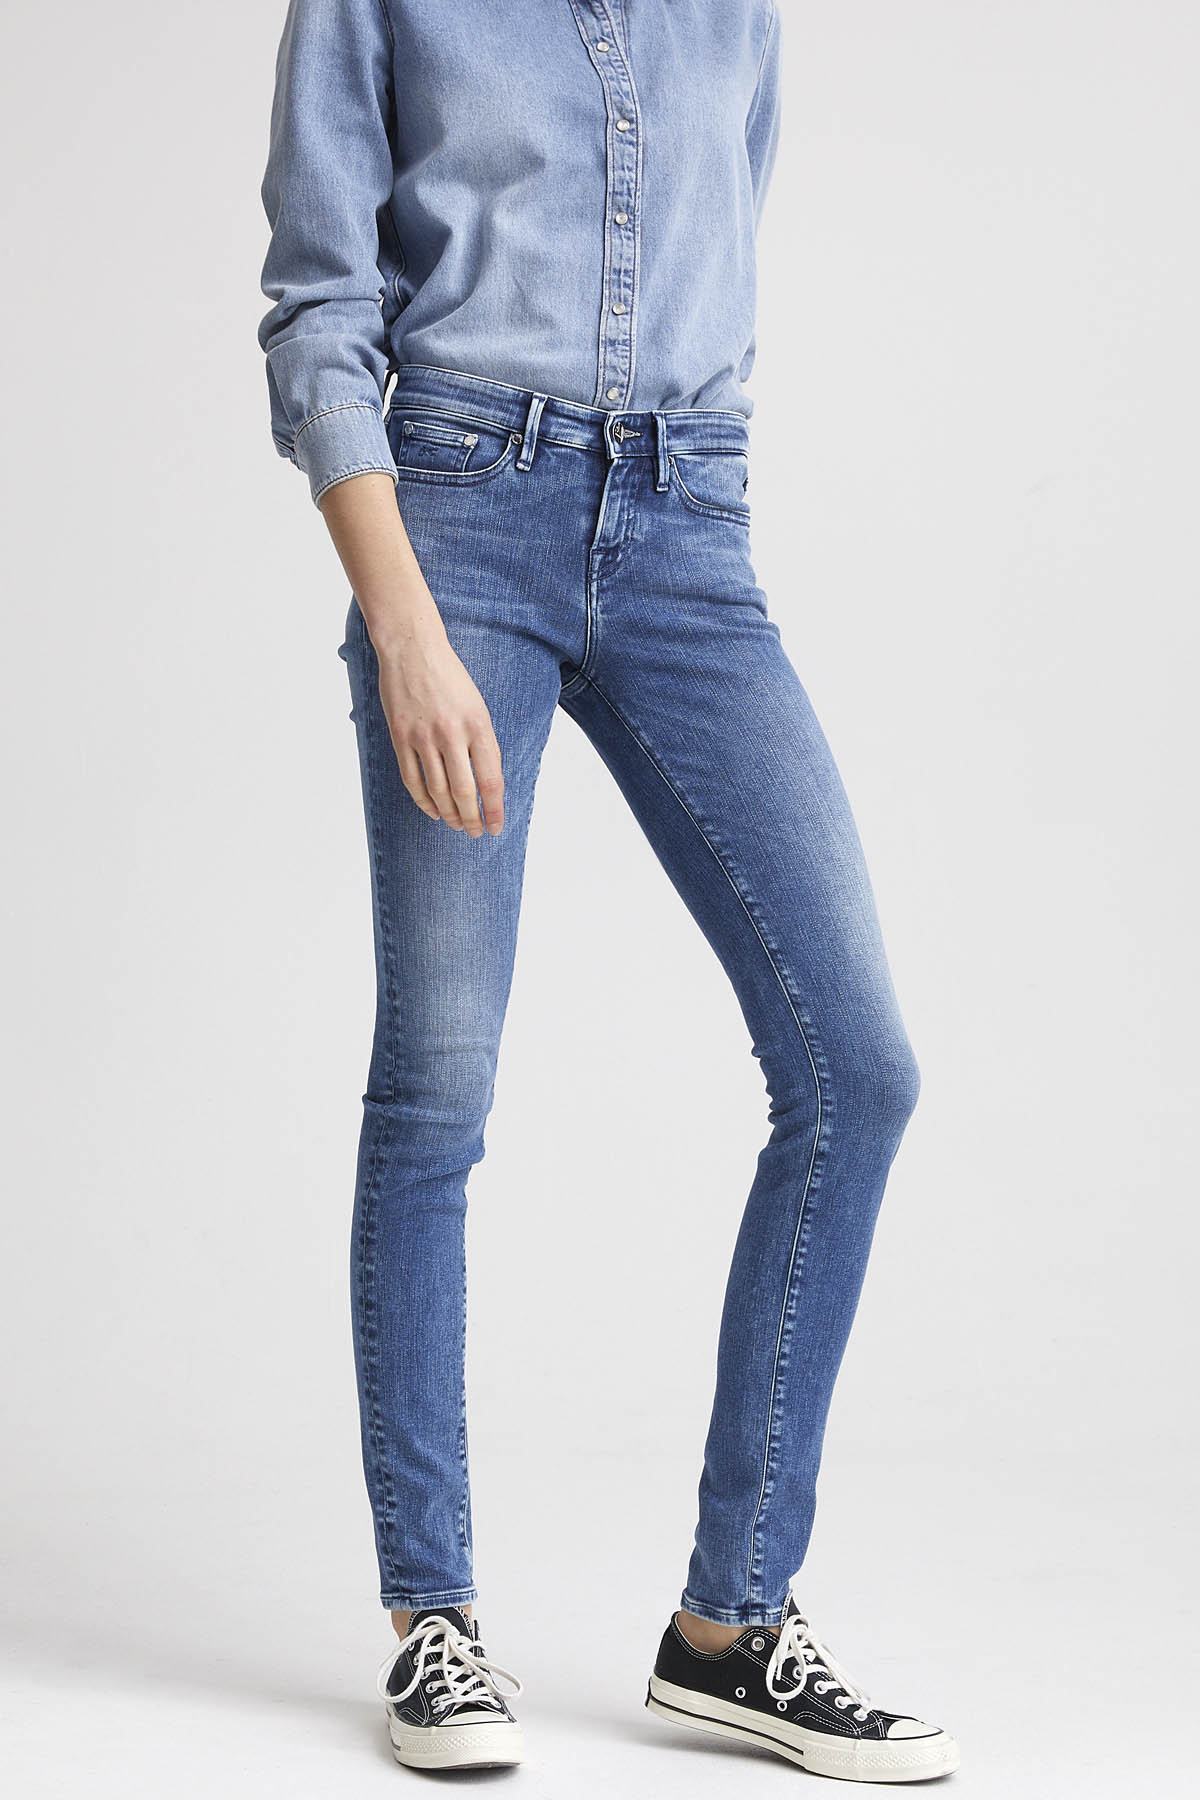 Sharp - Skinny Fit Jeans - Front